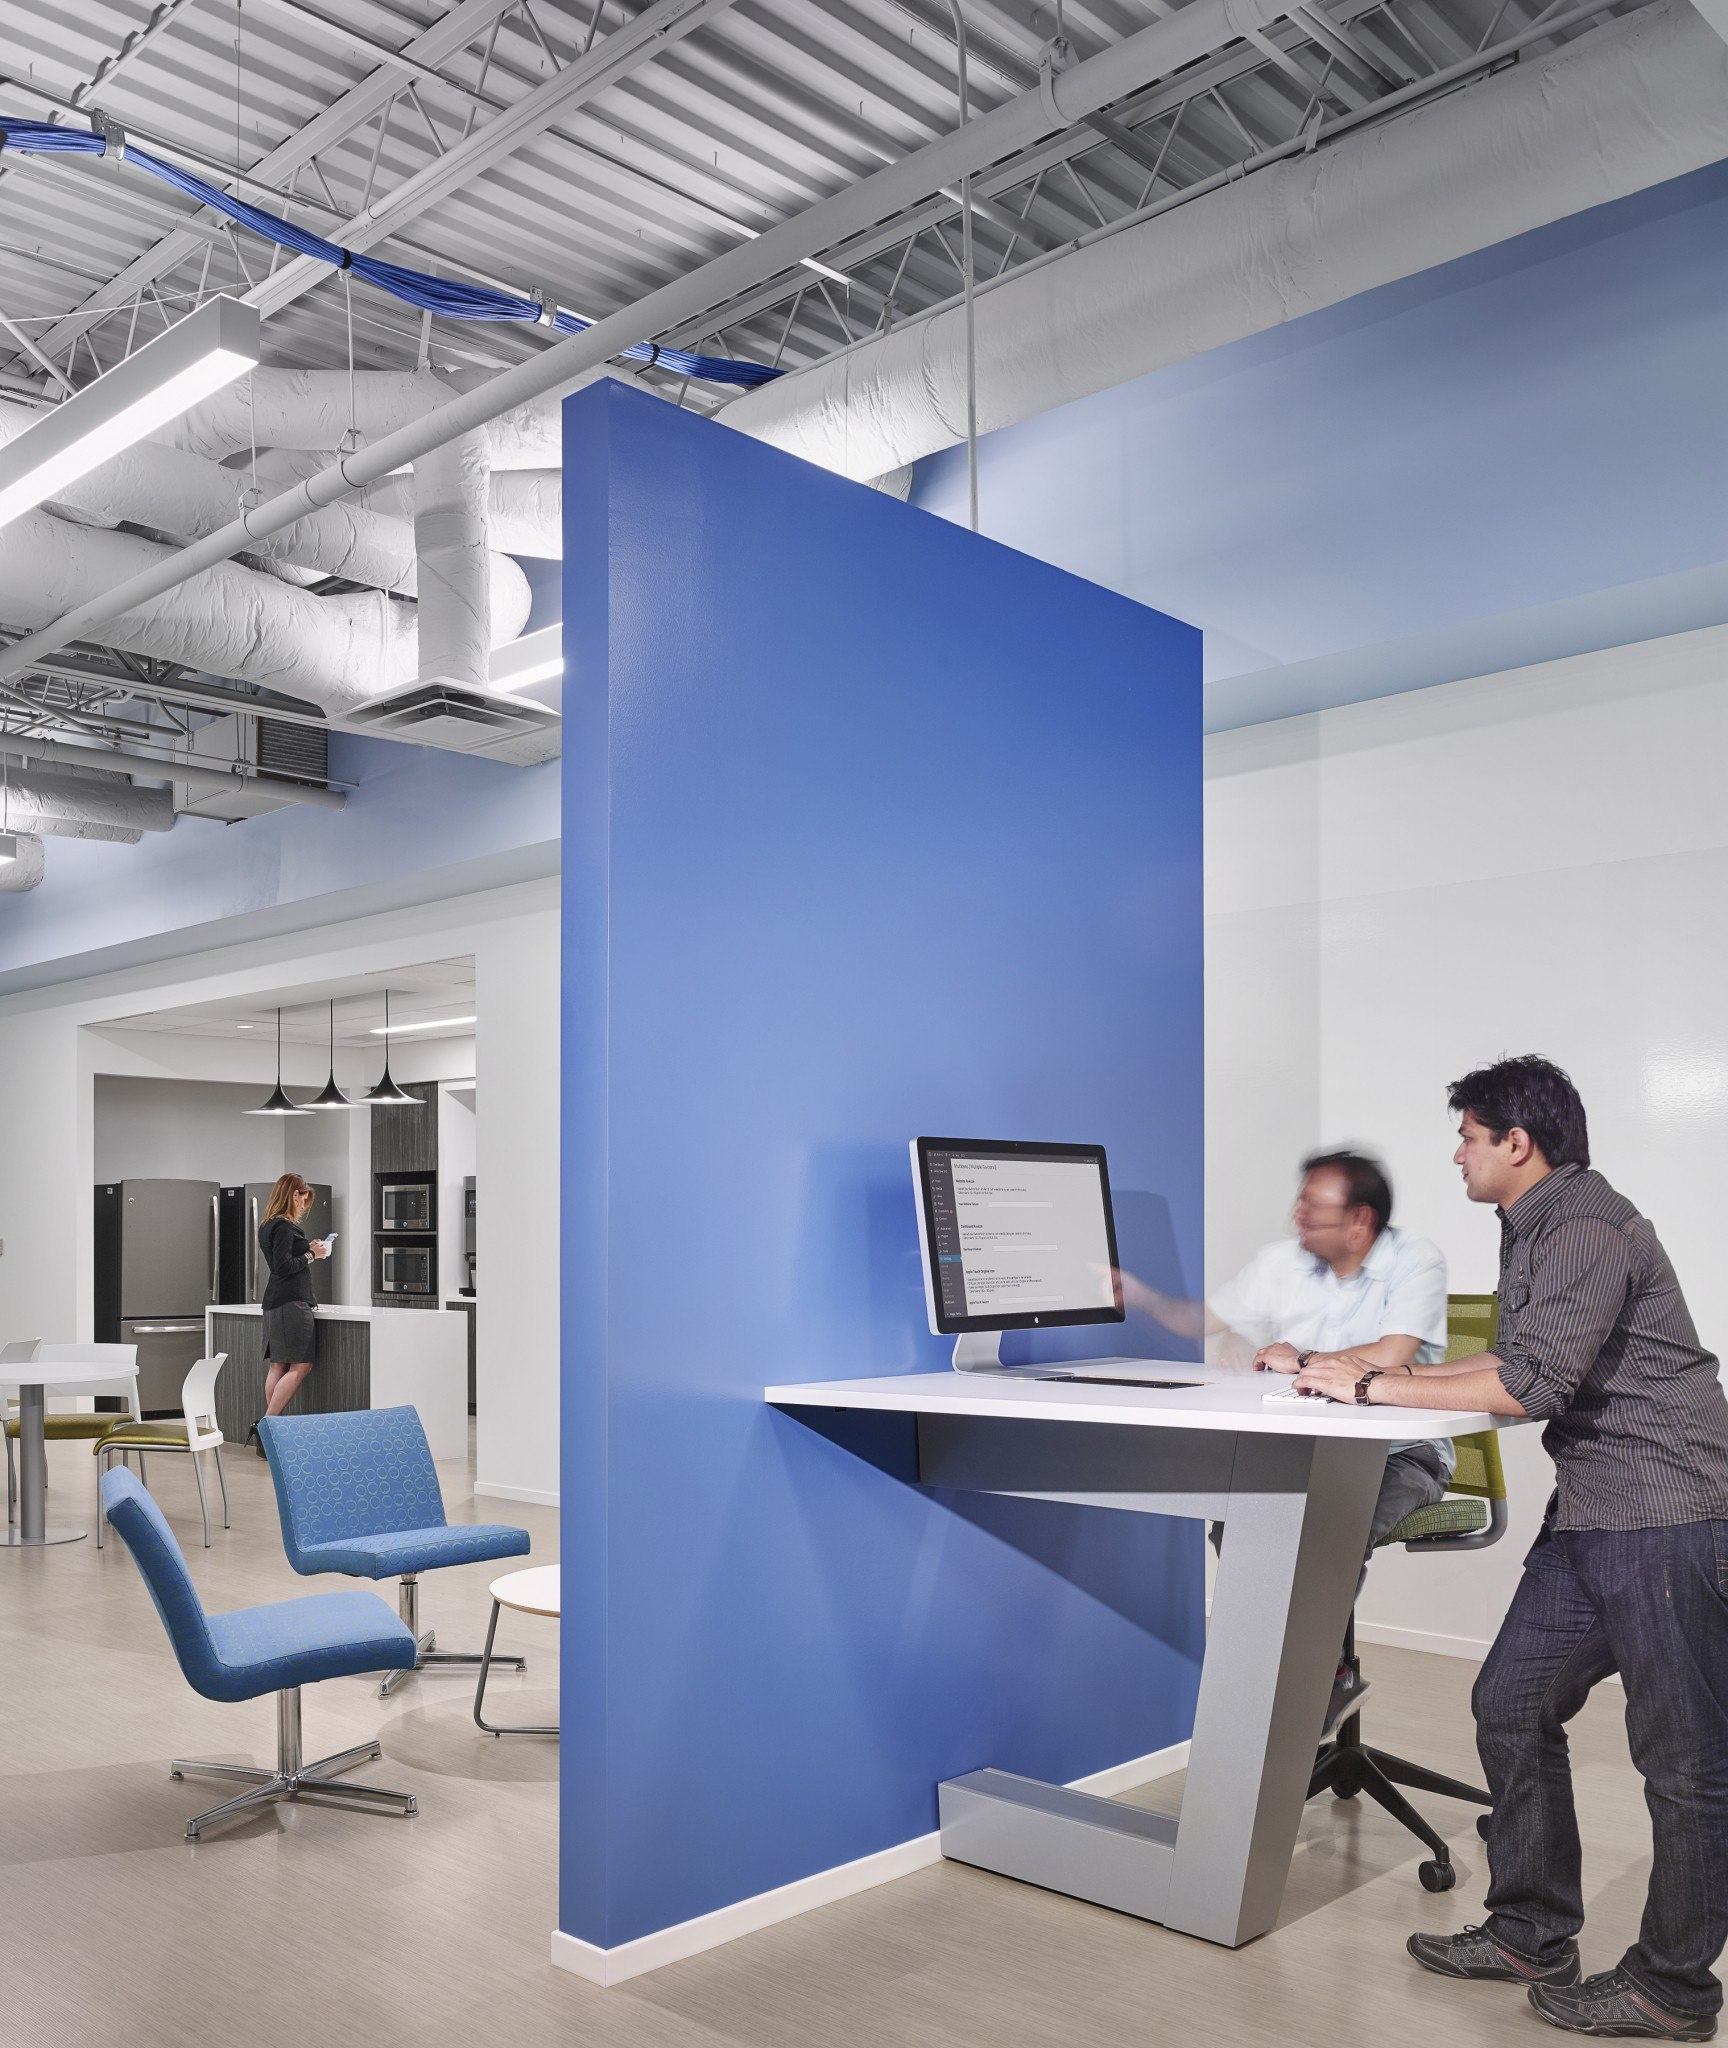 Valtech - Gordon Highlander -High Rise Office Project - Breakroom and Collaboration